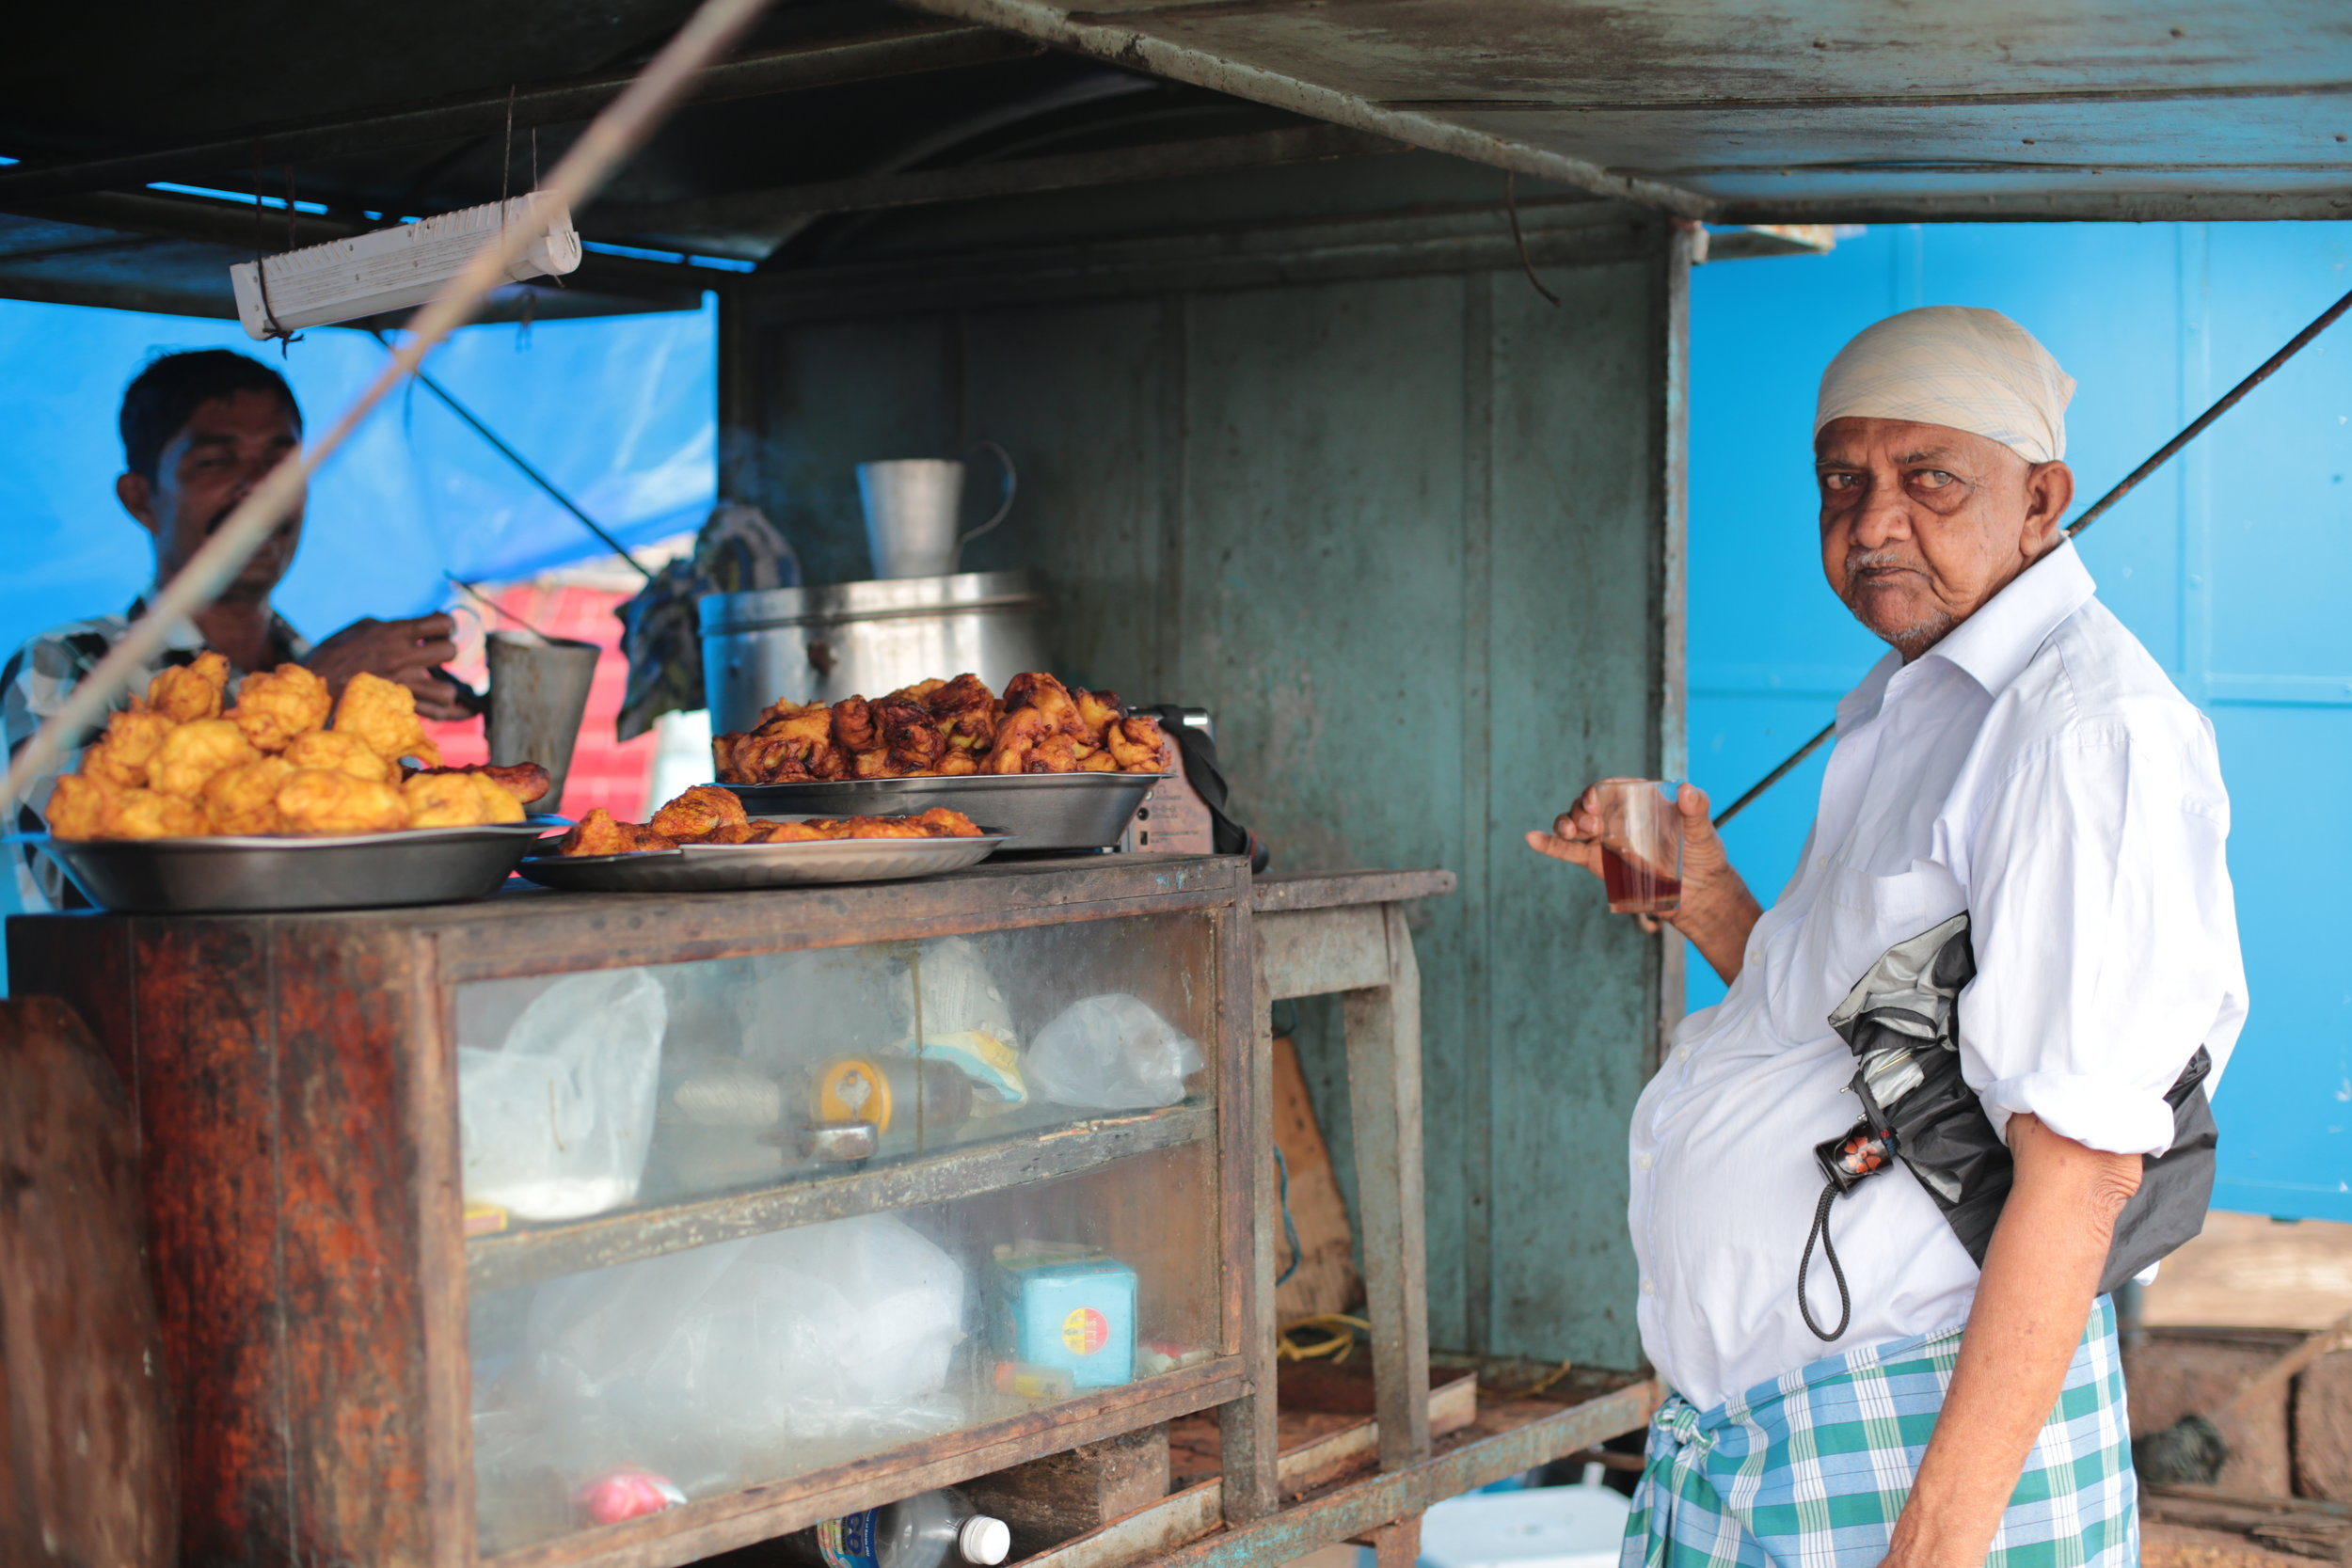 At 5 o'clock, head to the blue carts parked next to the fish market to sample some arikadduka, Tellicherry's most prized snack – stuffed and fried mussels.